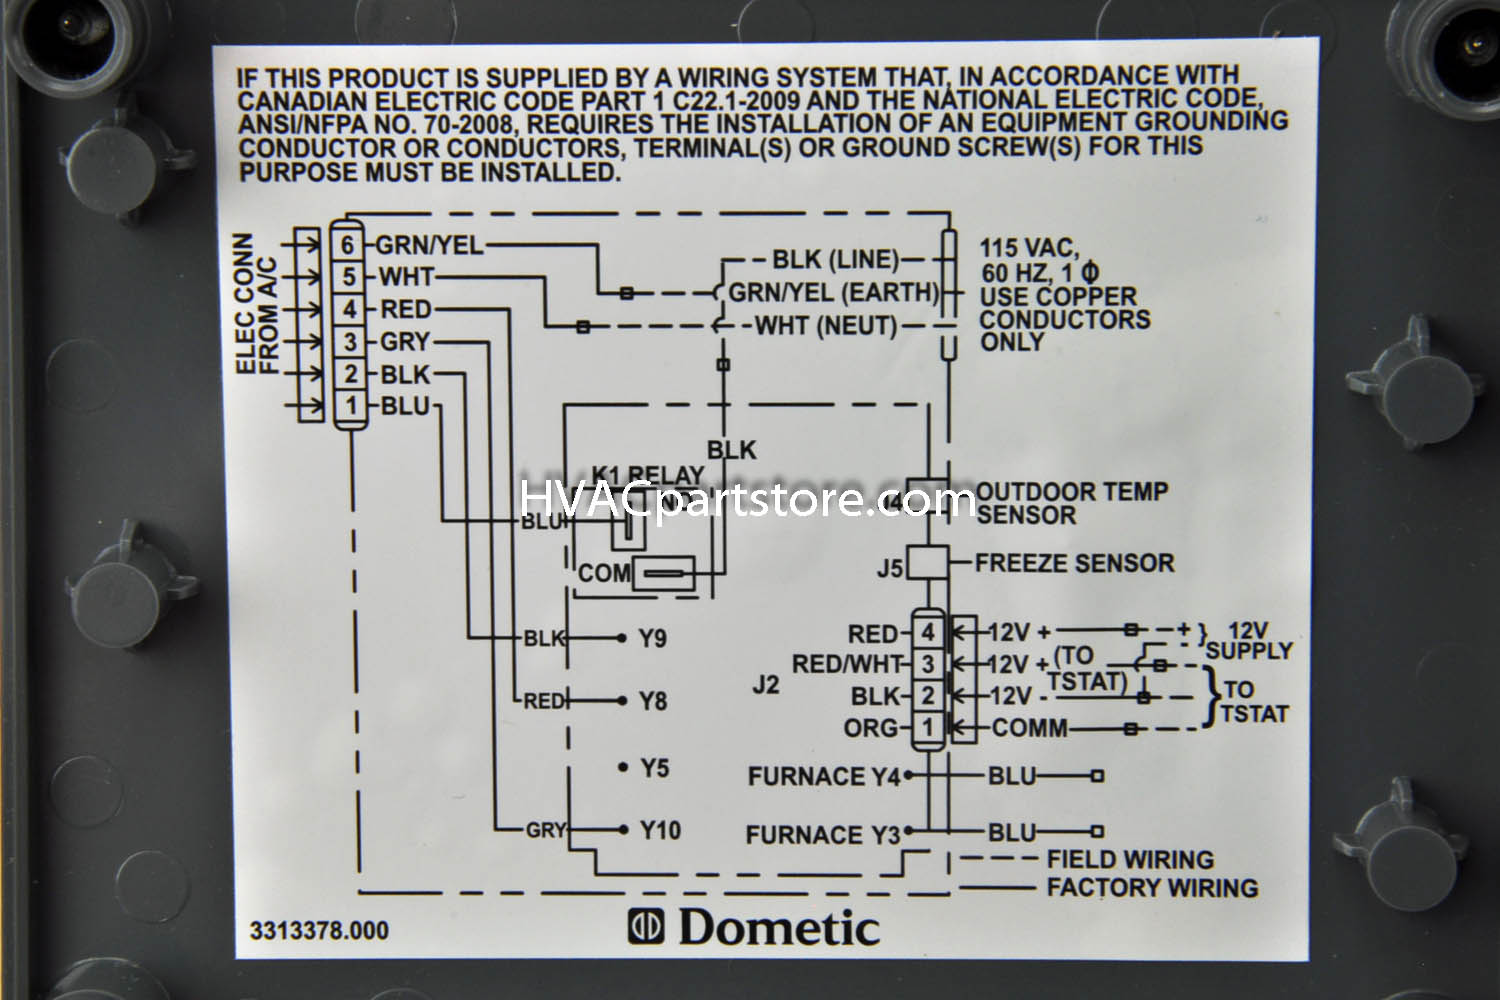 Dometic Duo Therm Brisk T Stat Relay Box With Heat Pump Option Black on Dometic Duo Therm Thermostat Wiring Diagram